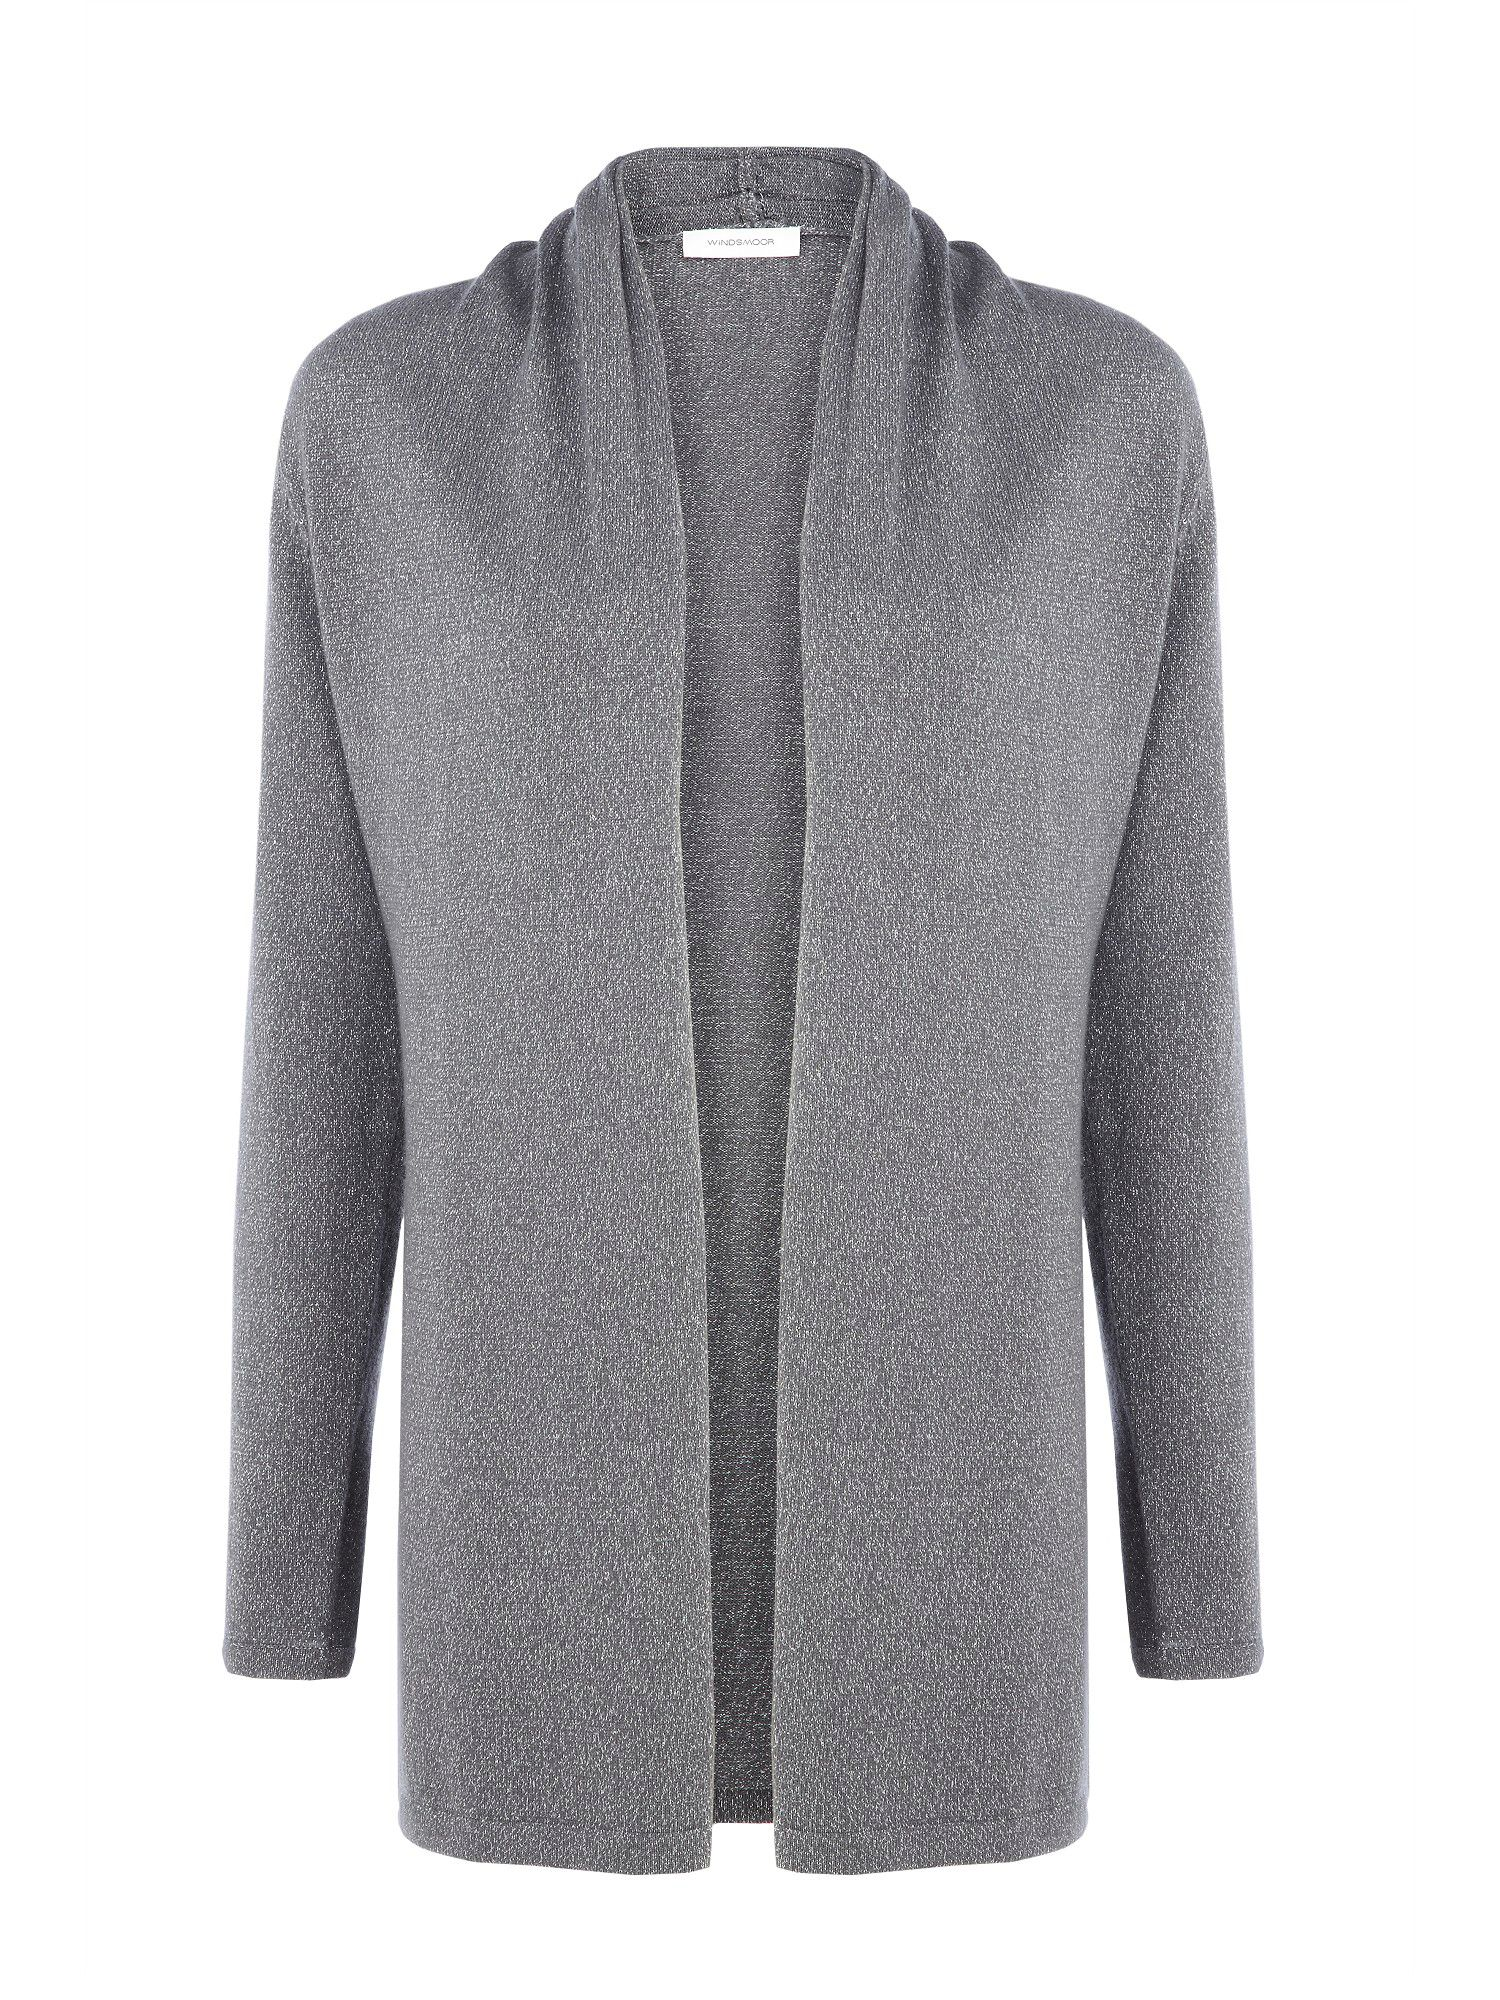 Dove grey cardigan